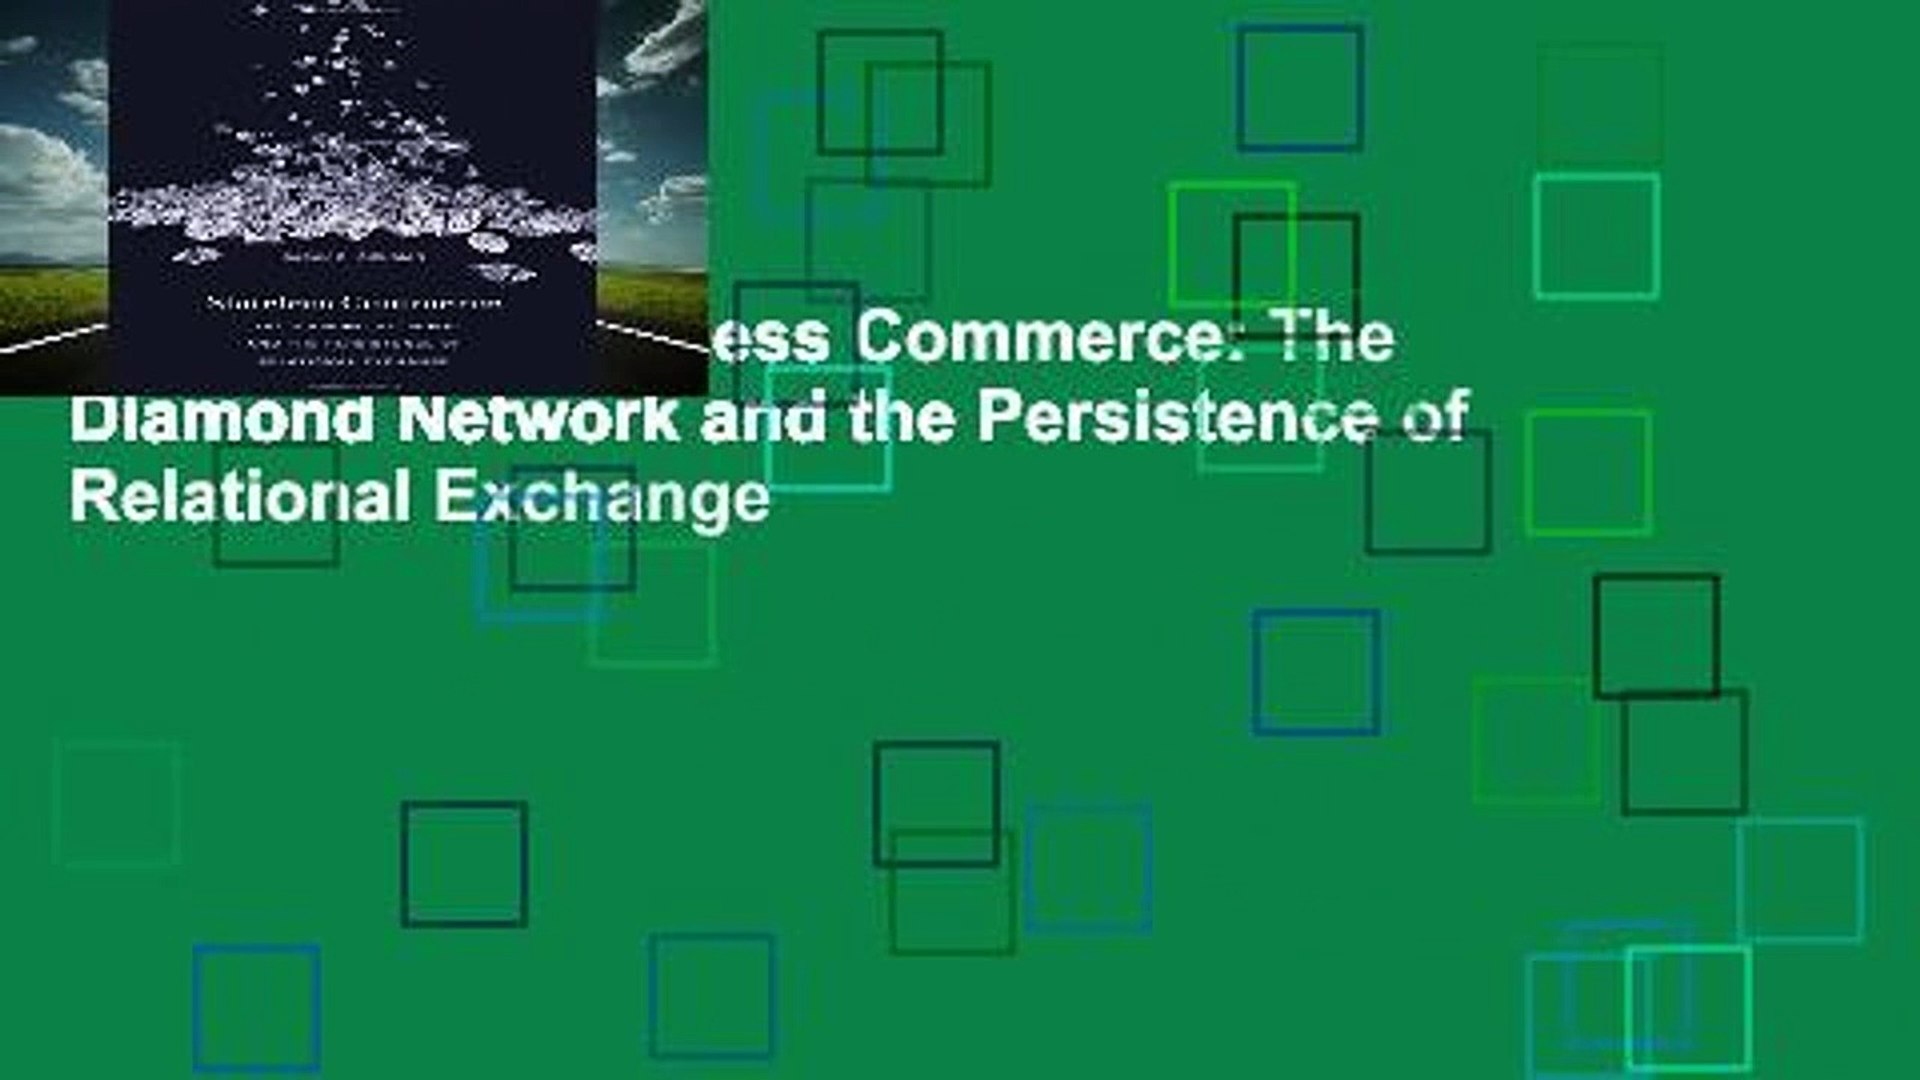 The Diamond Network and the Persistence of Relational Exchange Stateless Commerce